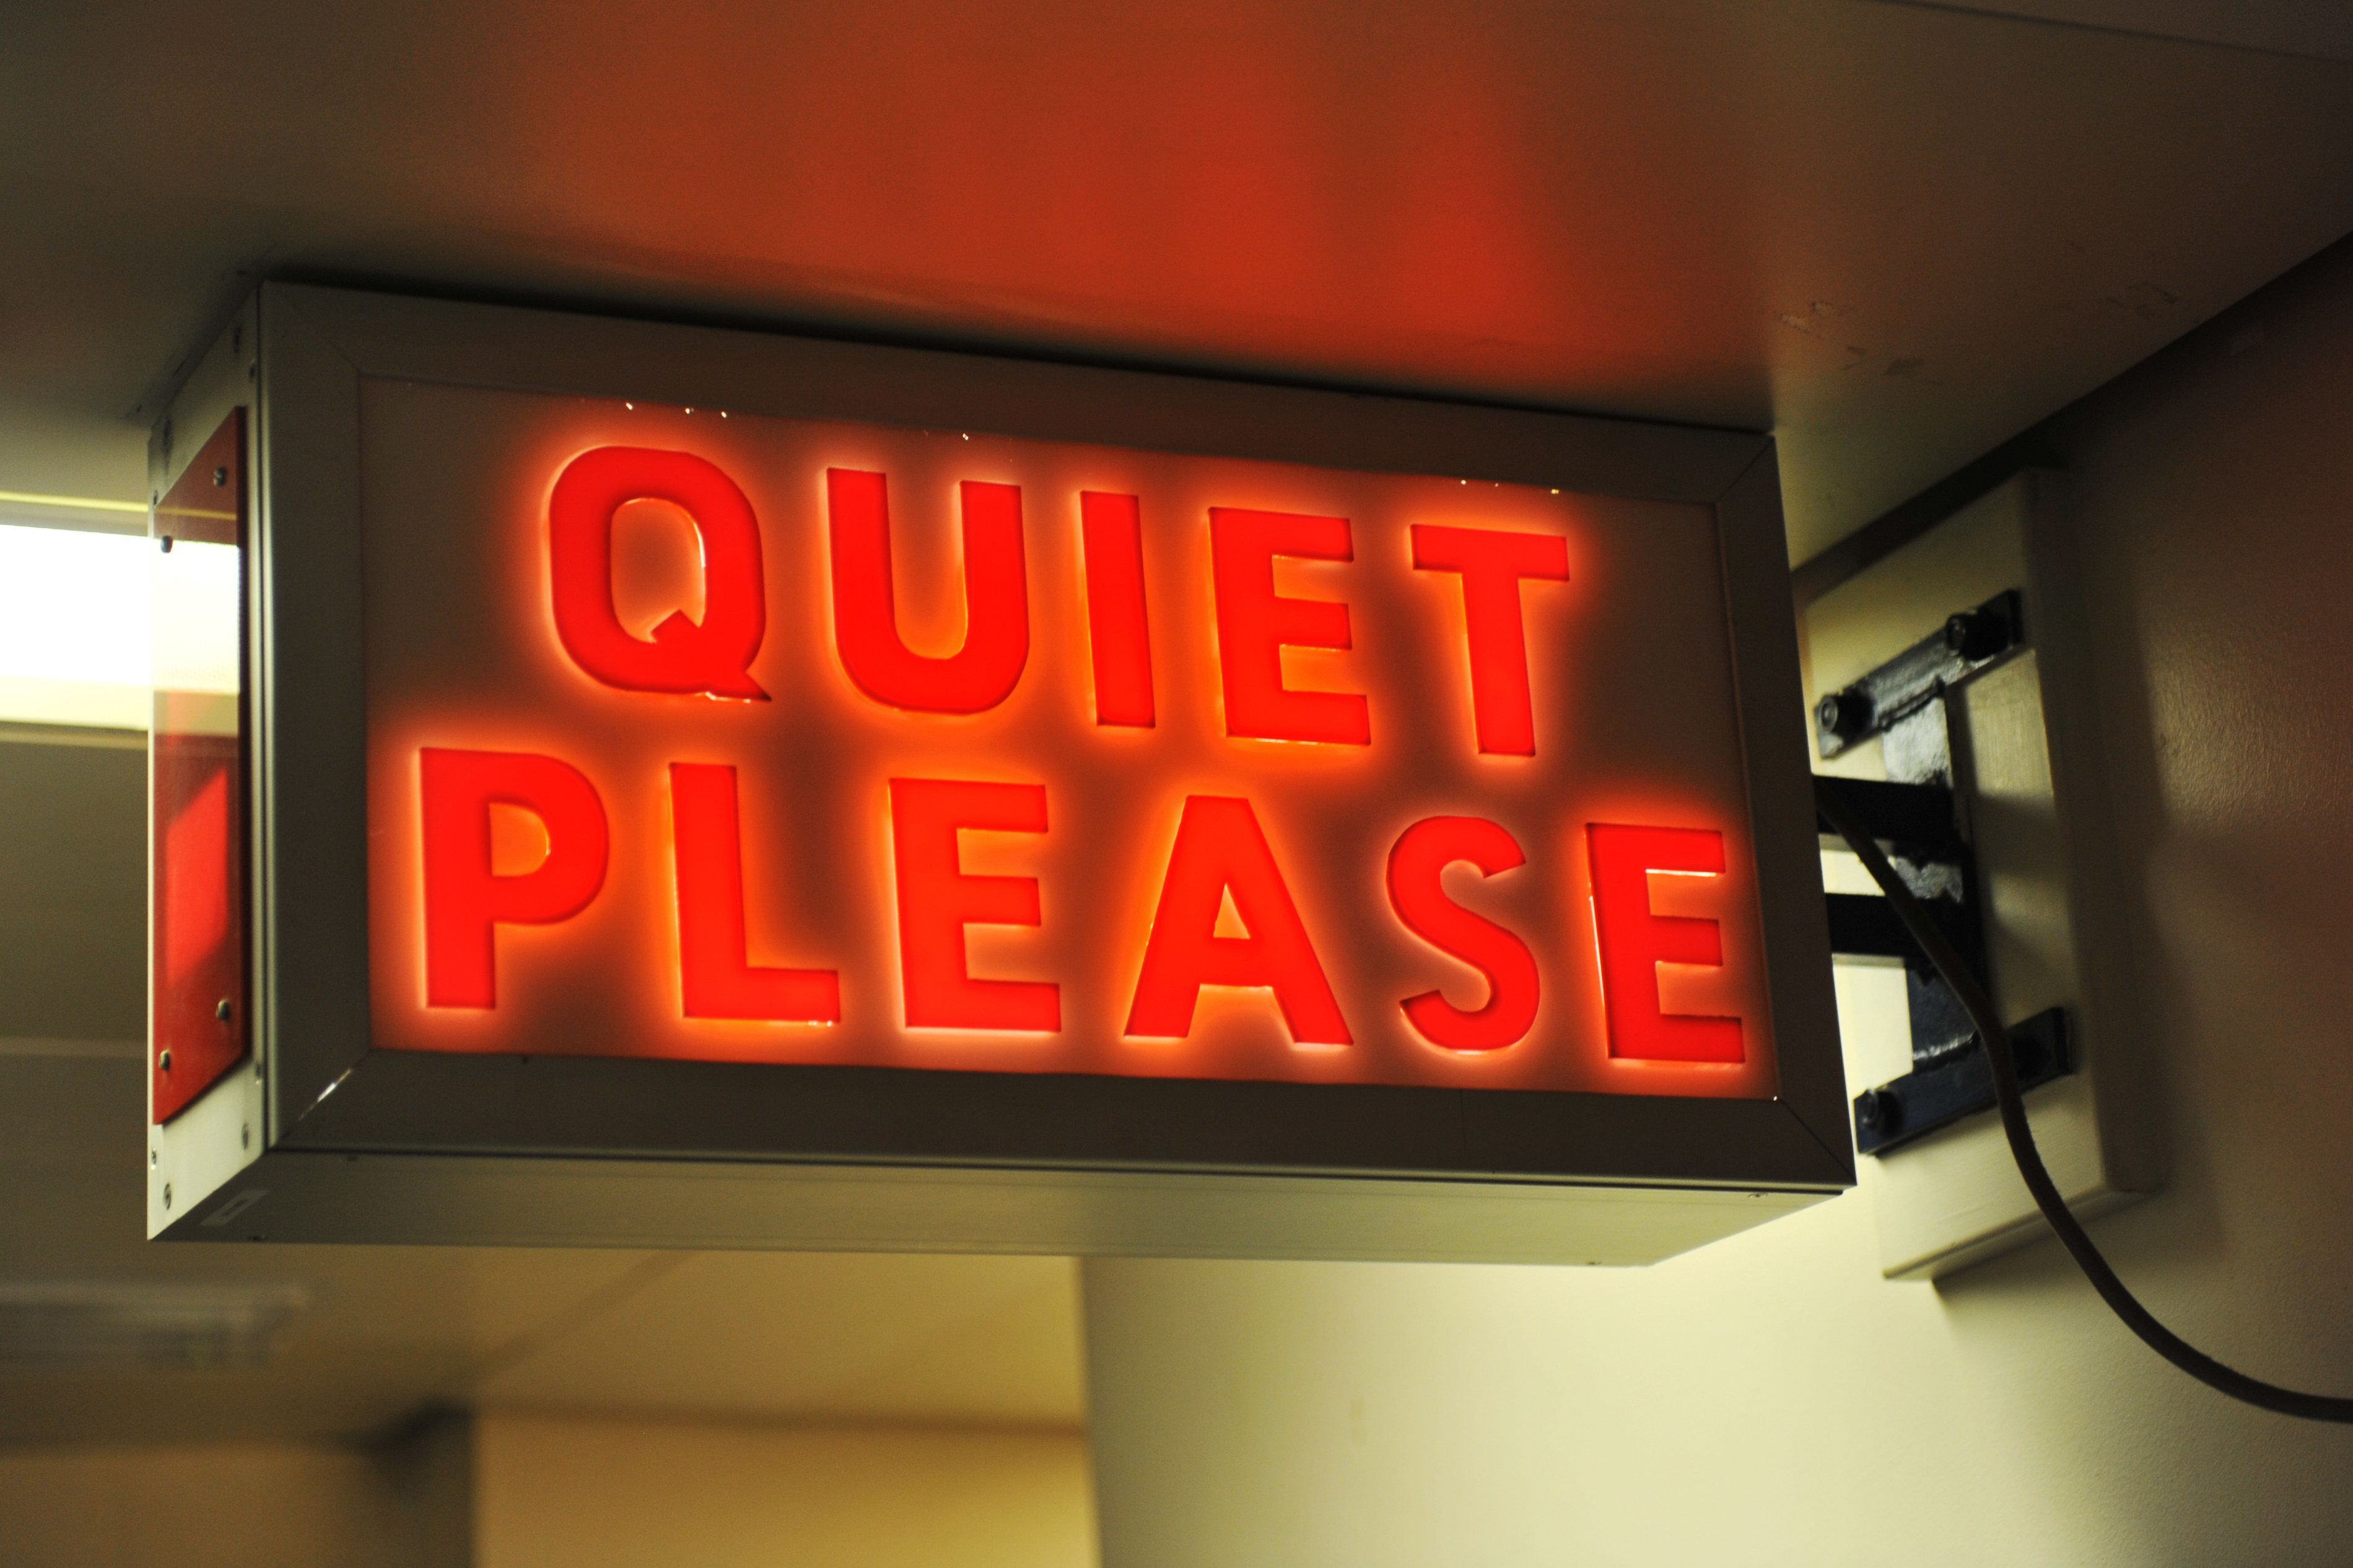 A vintage illuminated sign calling for quiet